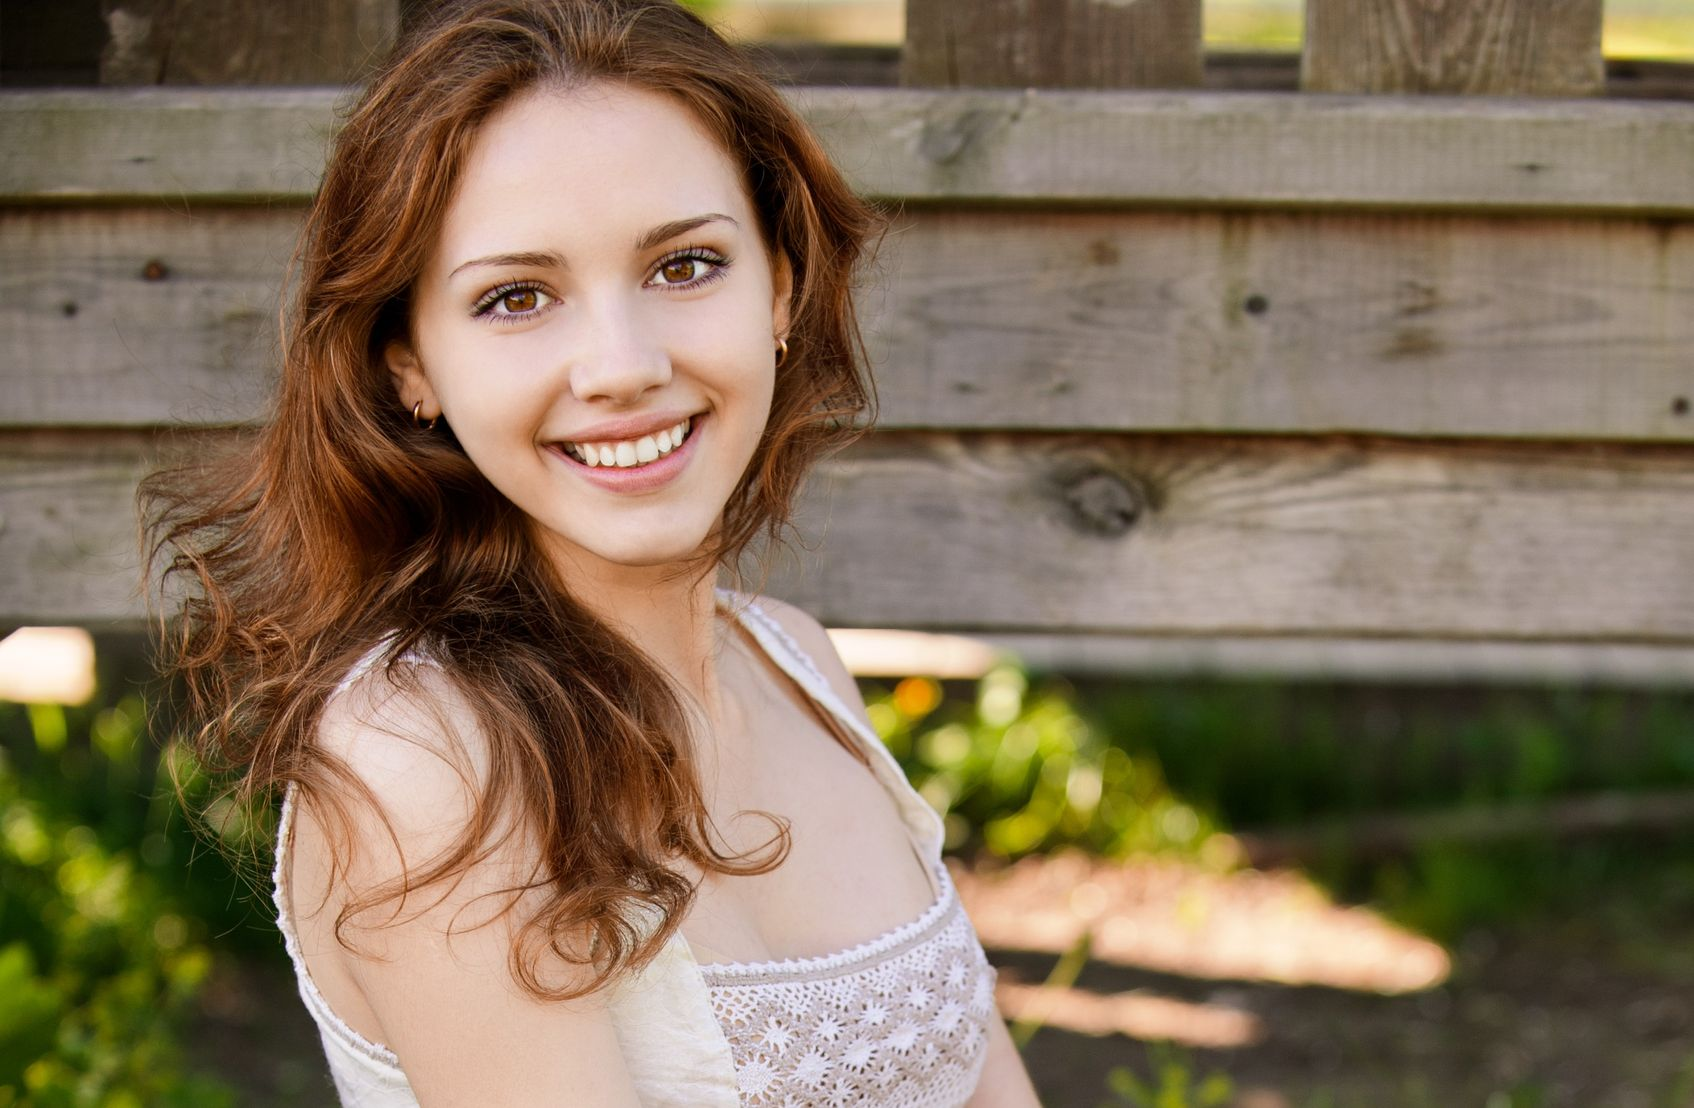 Breast Reduction Recovery: What Should I Expect?